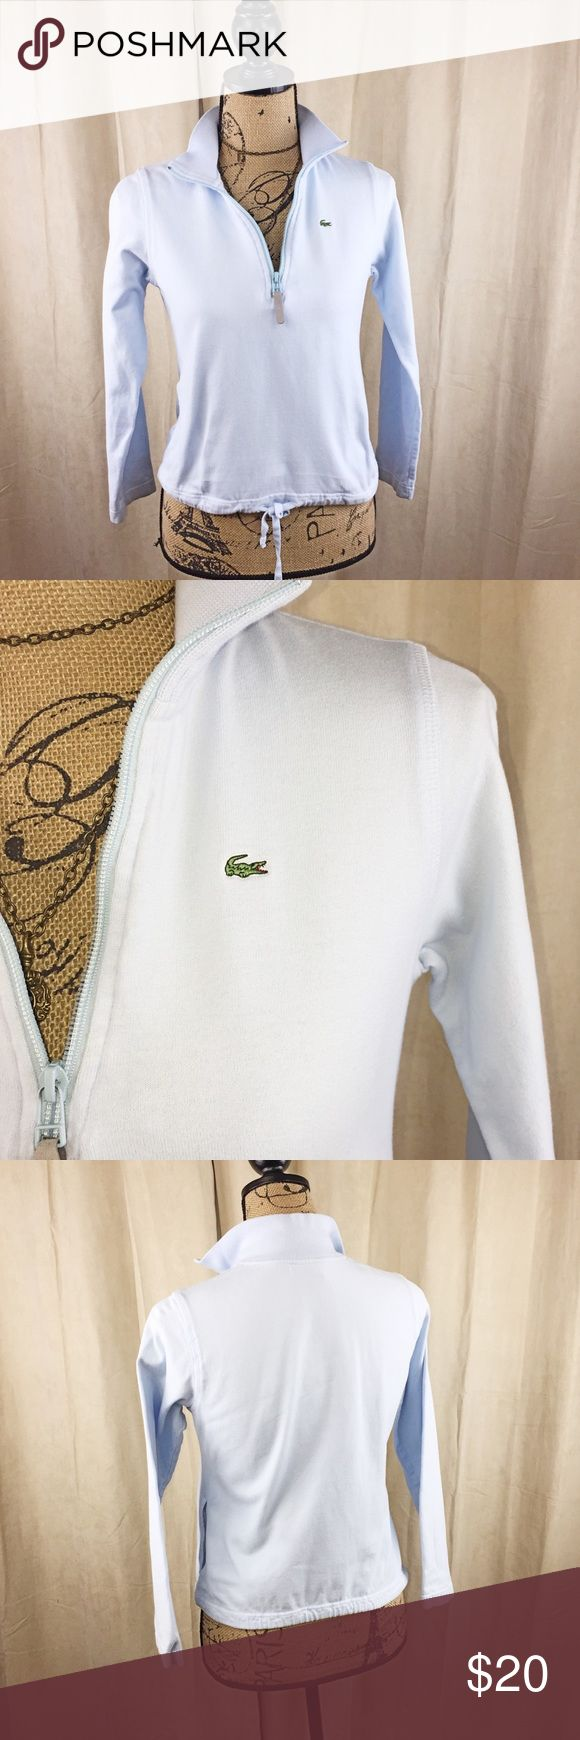 Lacoste pullover top Delicate pullover sweatshirt top with tie string waist. 1/3 zip up. High collar. Classic Lacoste top Lacoste Tops